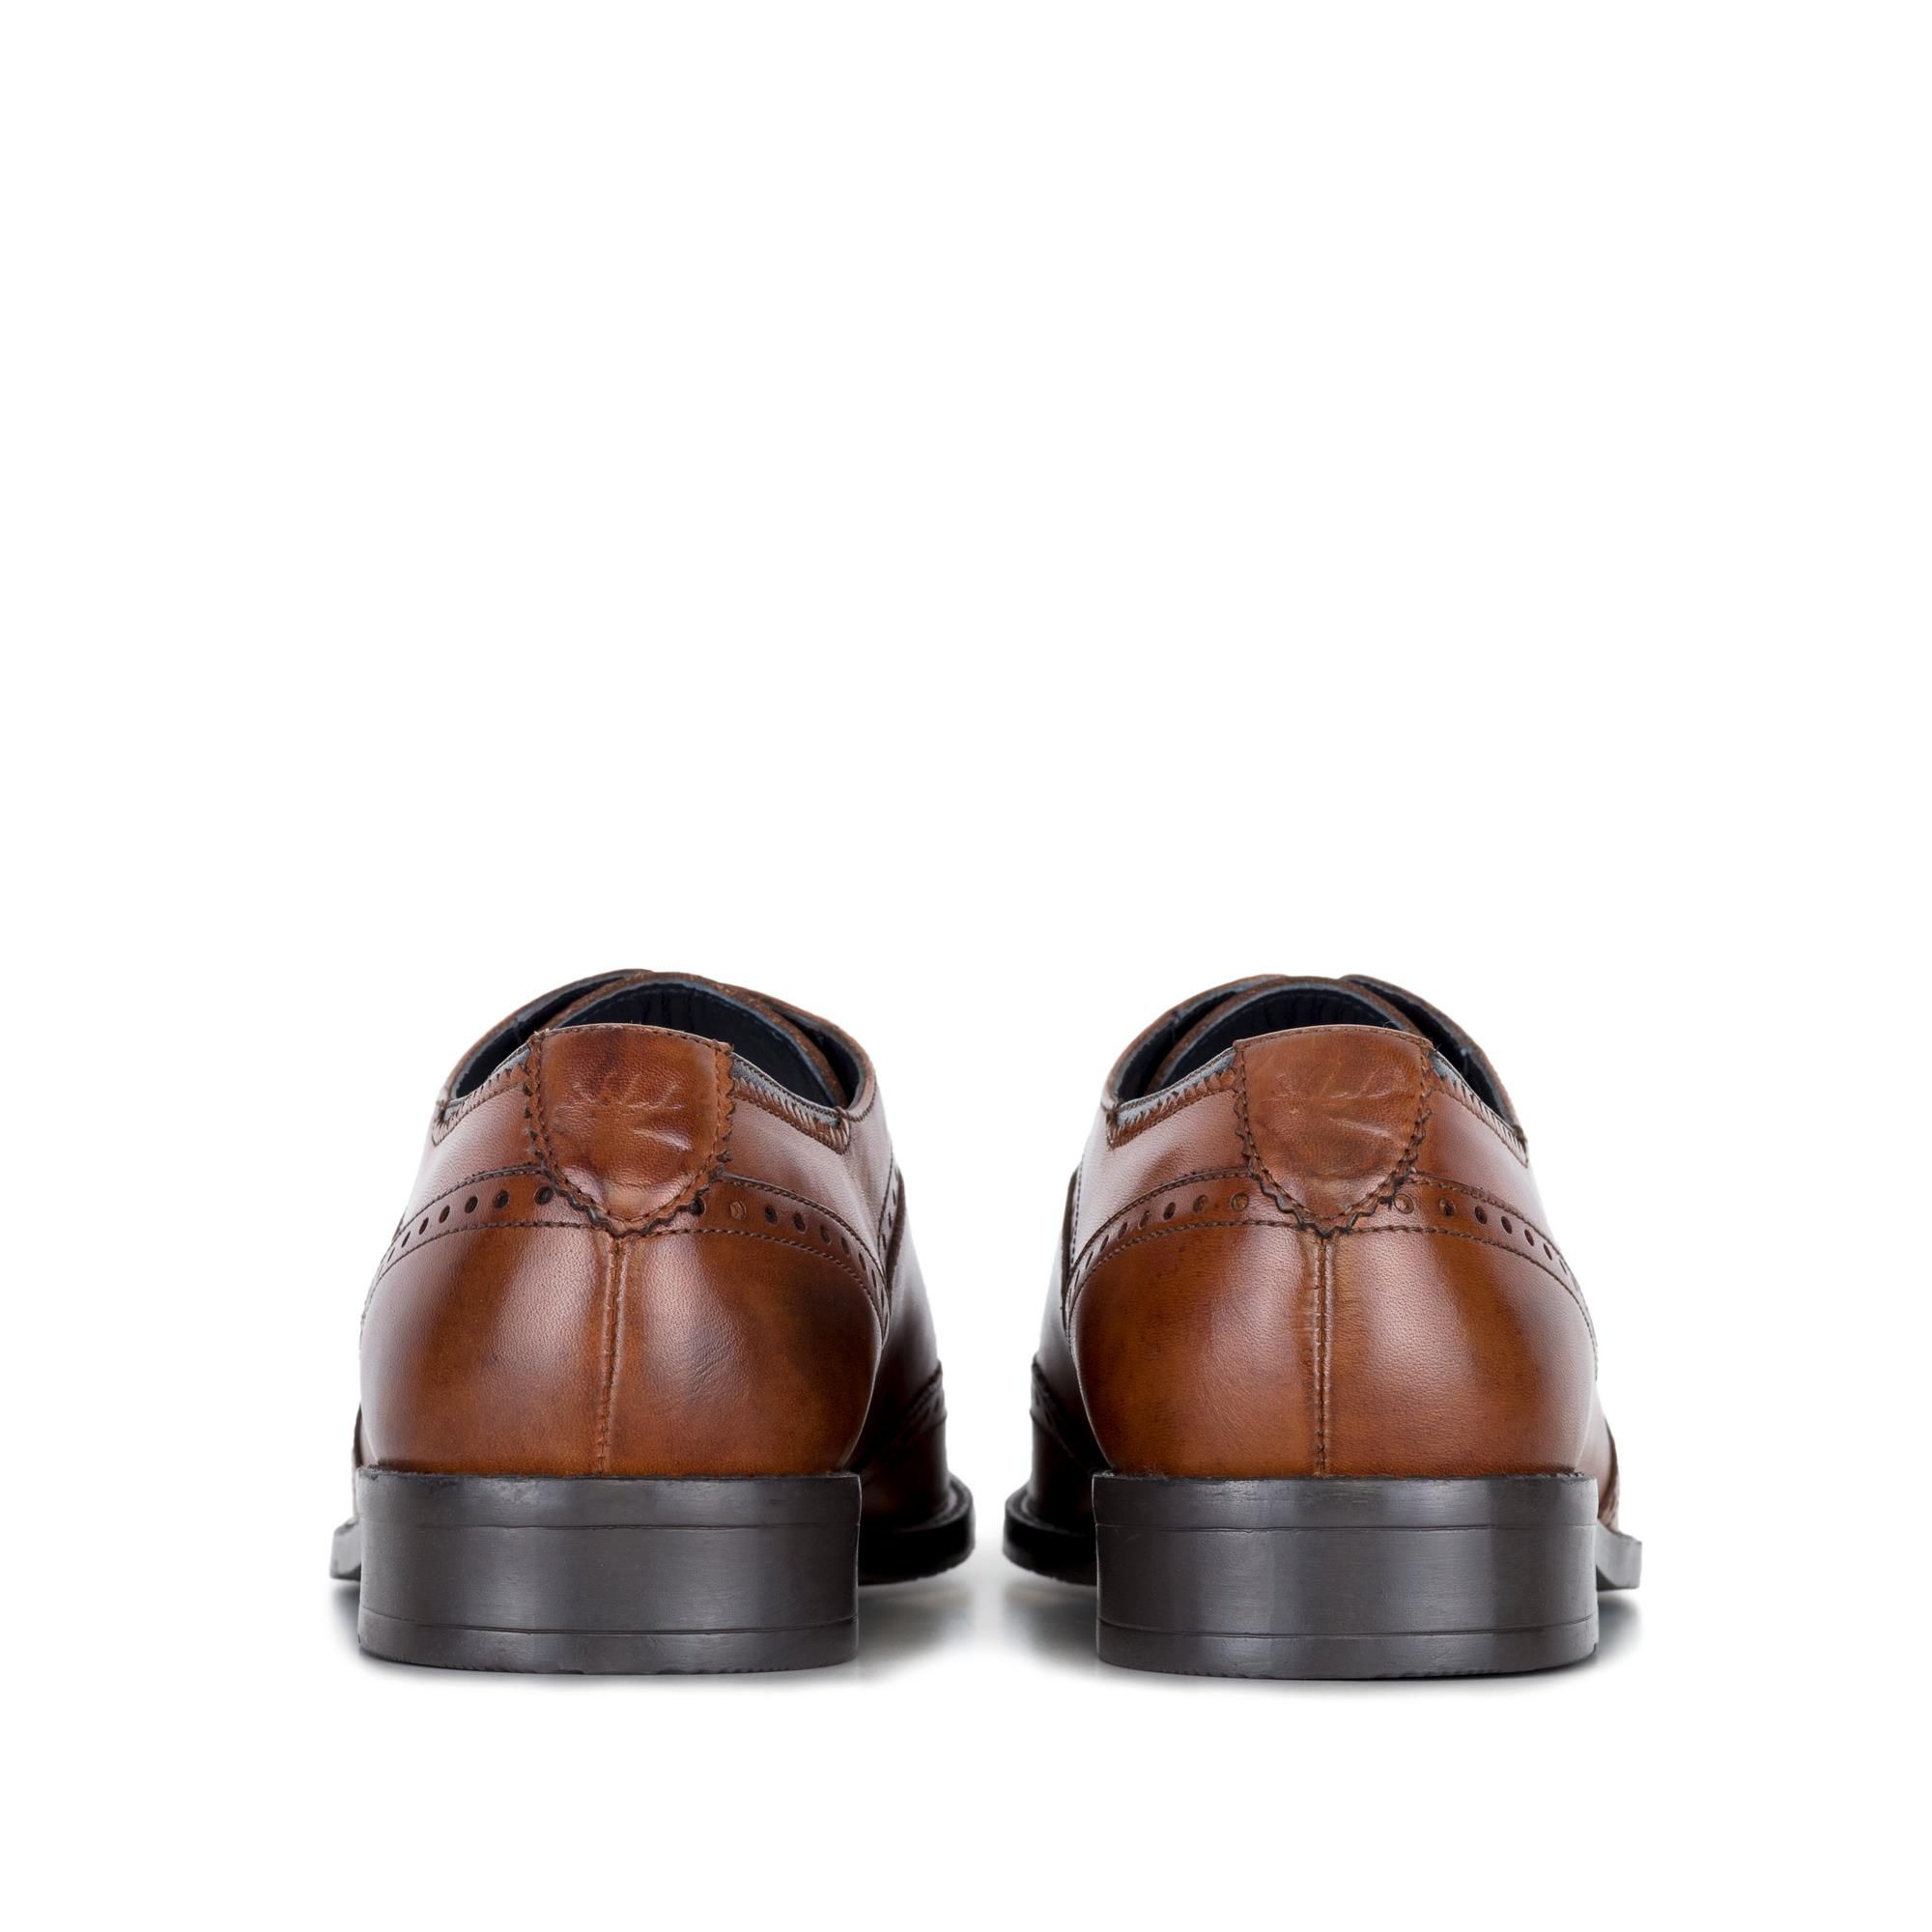 Goodwin Smith Albany Tan Winged Toe Oxford Leather Shoe